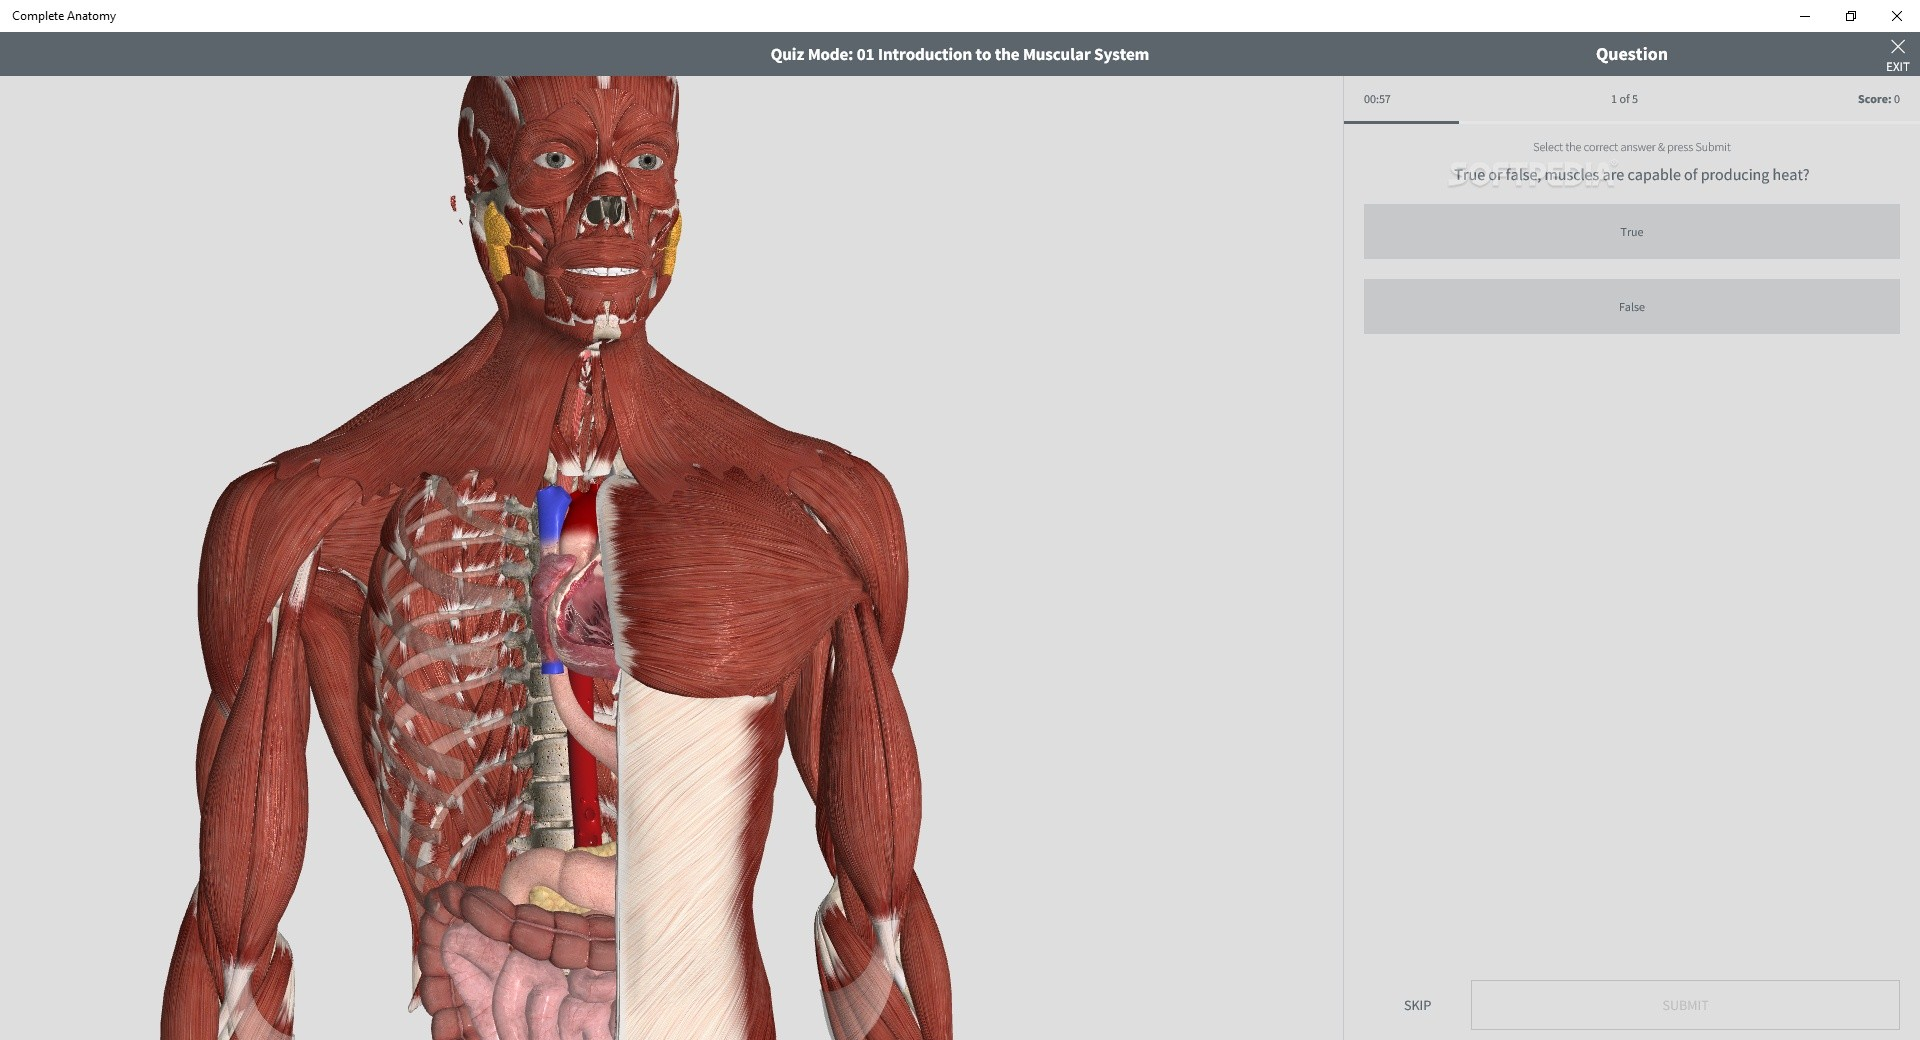 Download Complete Anatomy 2019 5 0 6 0